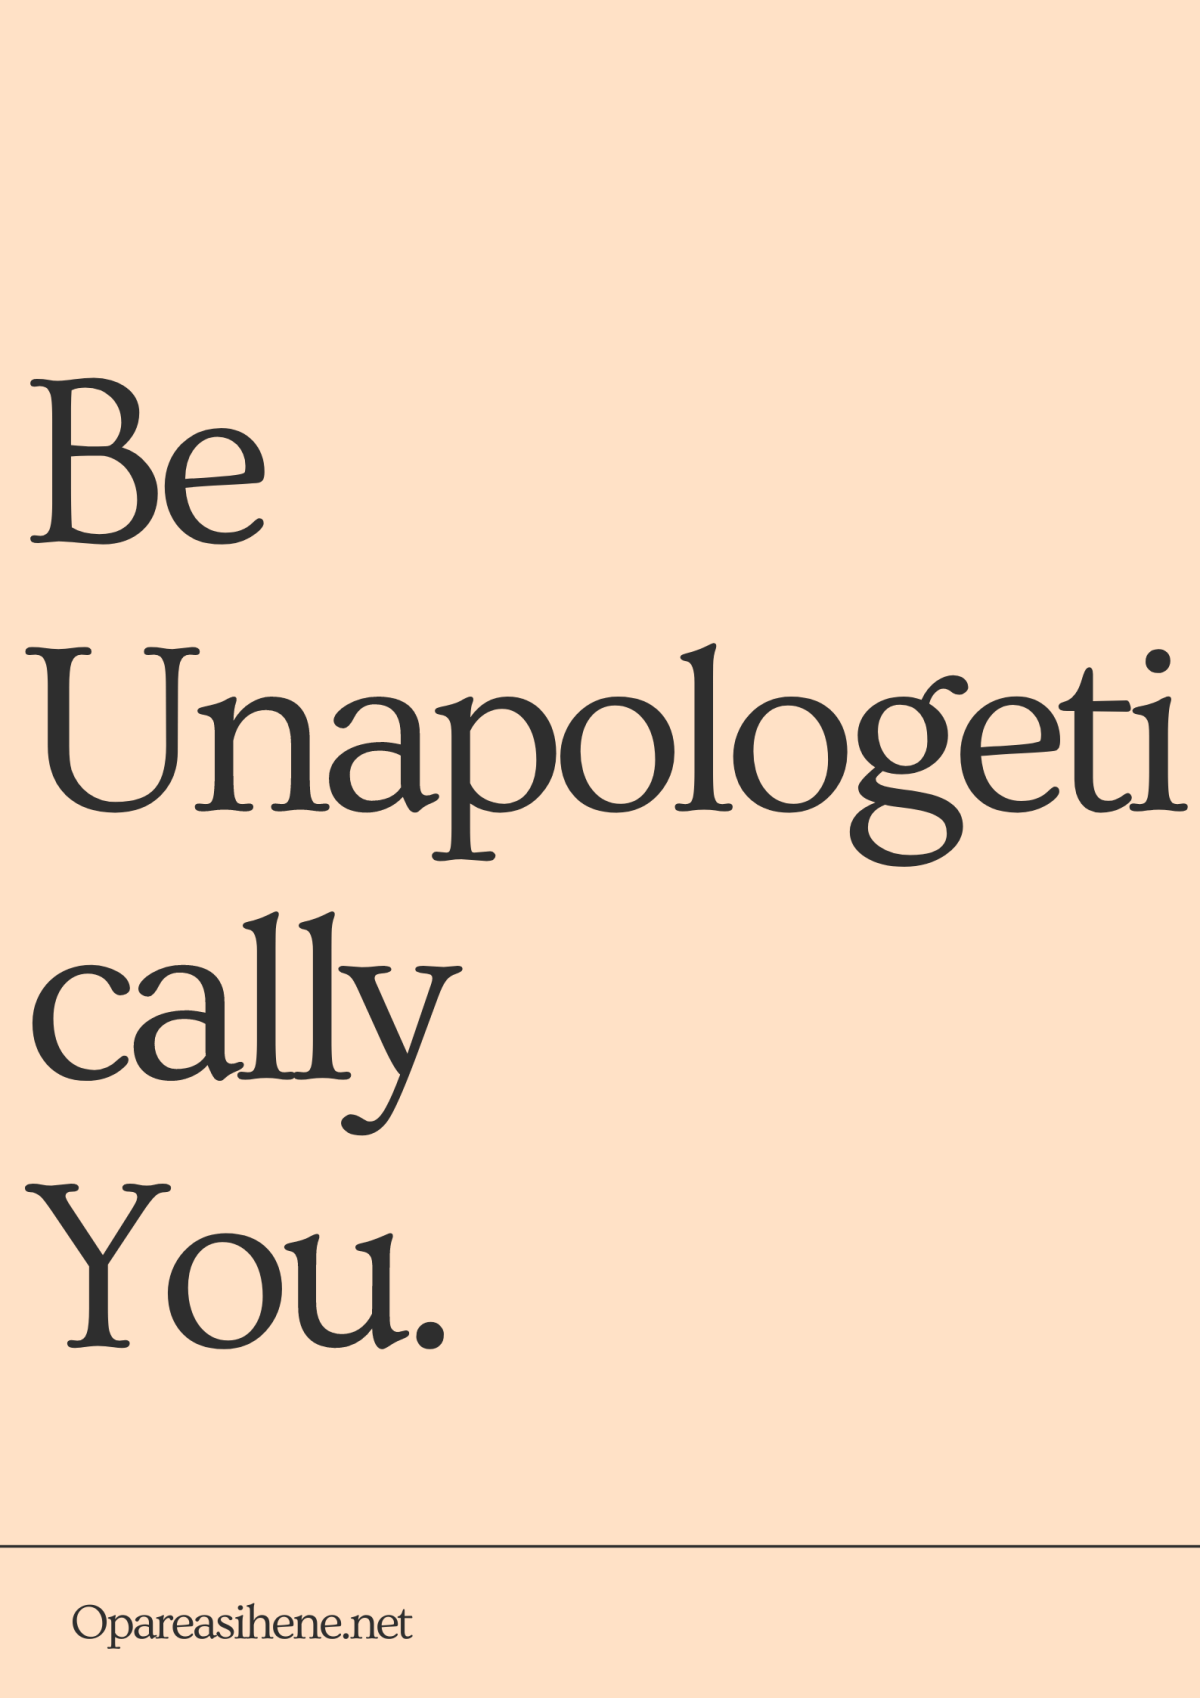 Be Unapologetically You. Be yourself and if people can't accept that, they aren't for you.